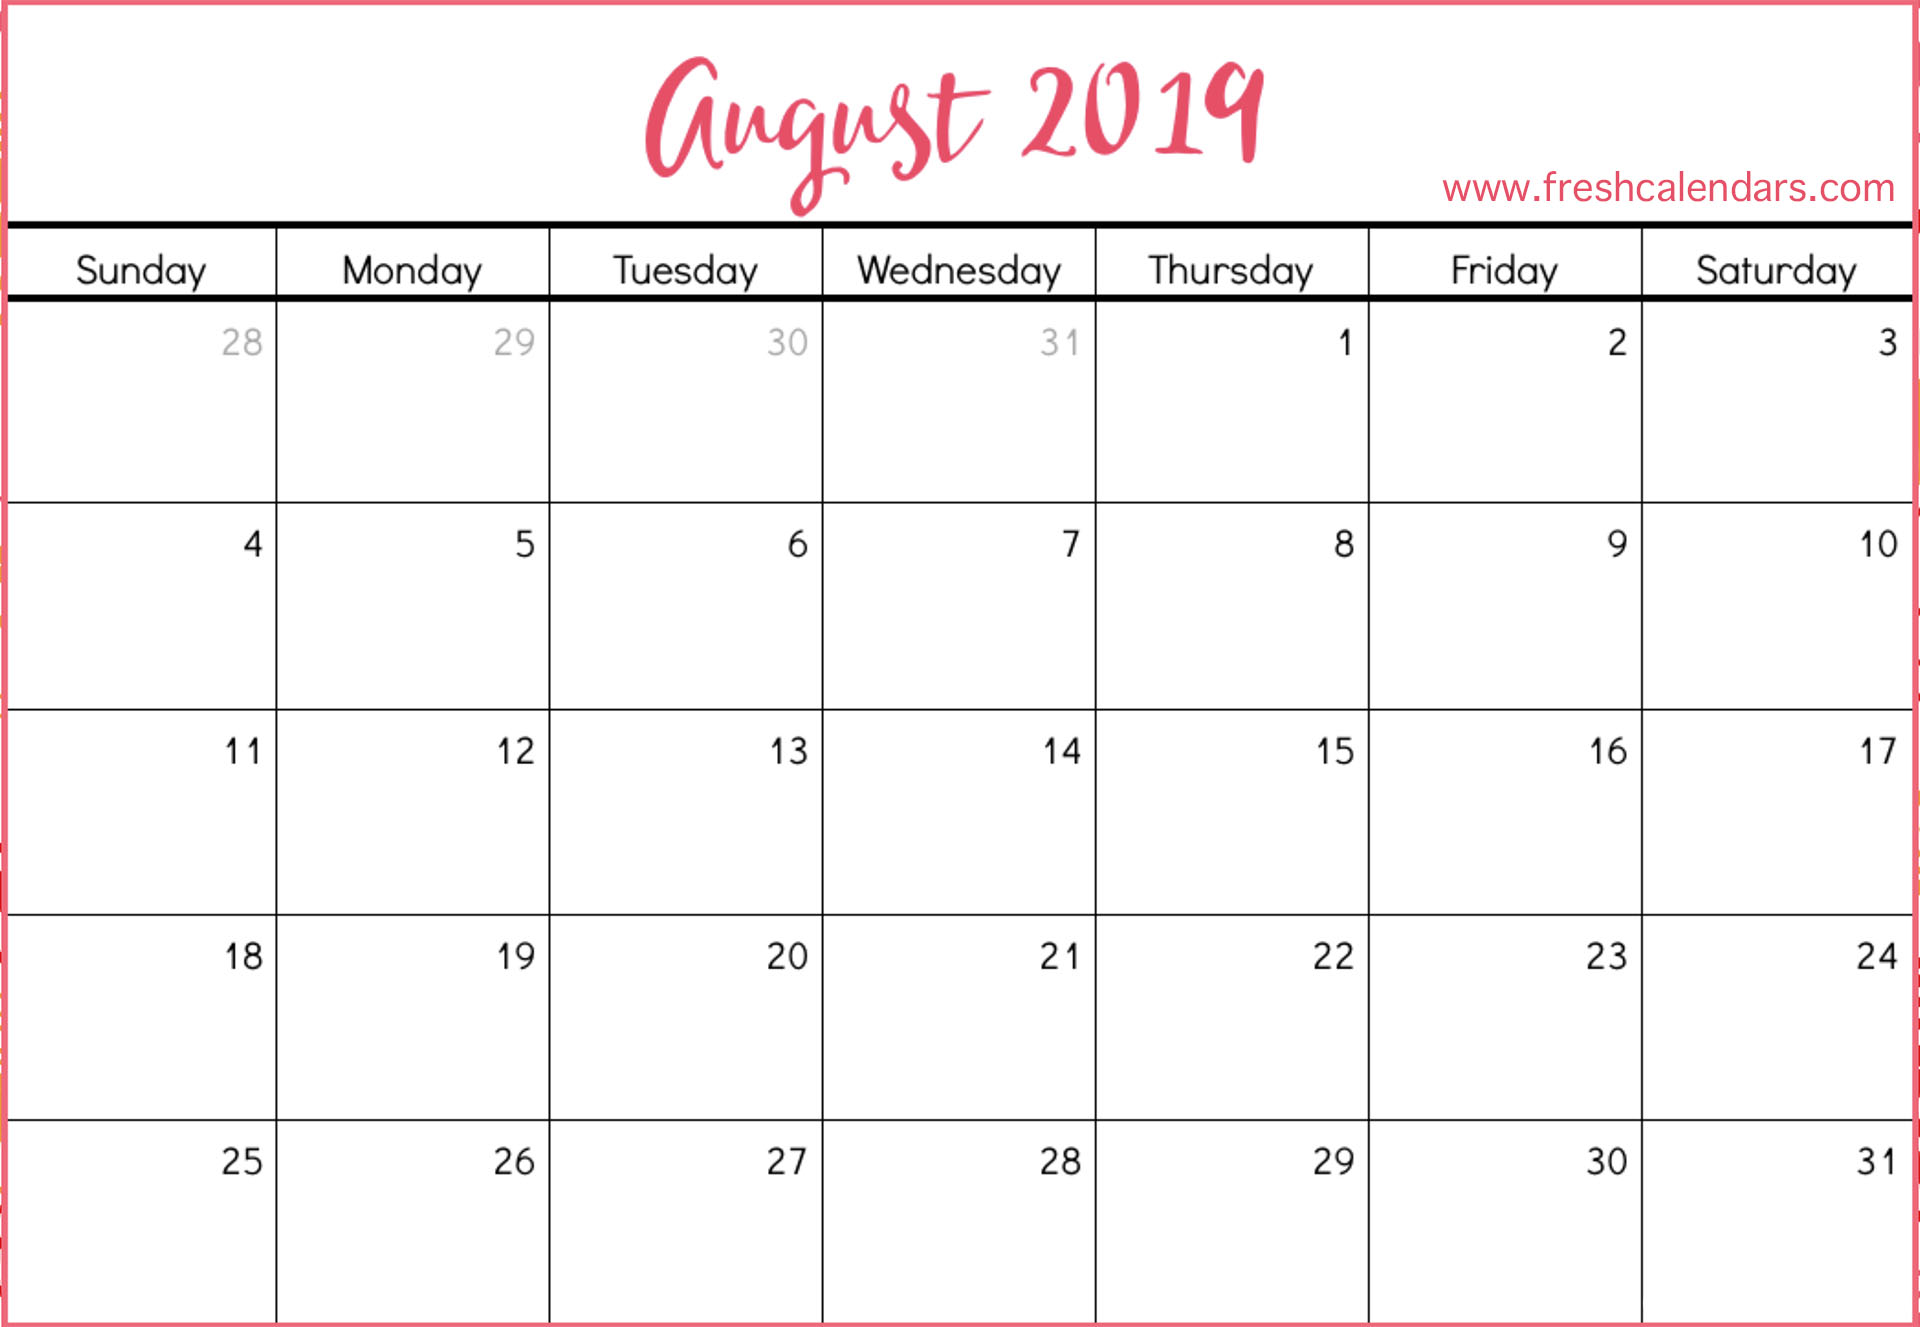 August 2019 Calendar With Holidays.August 2019 Calendar Excel Free Printable Calendar Templates Blank